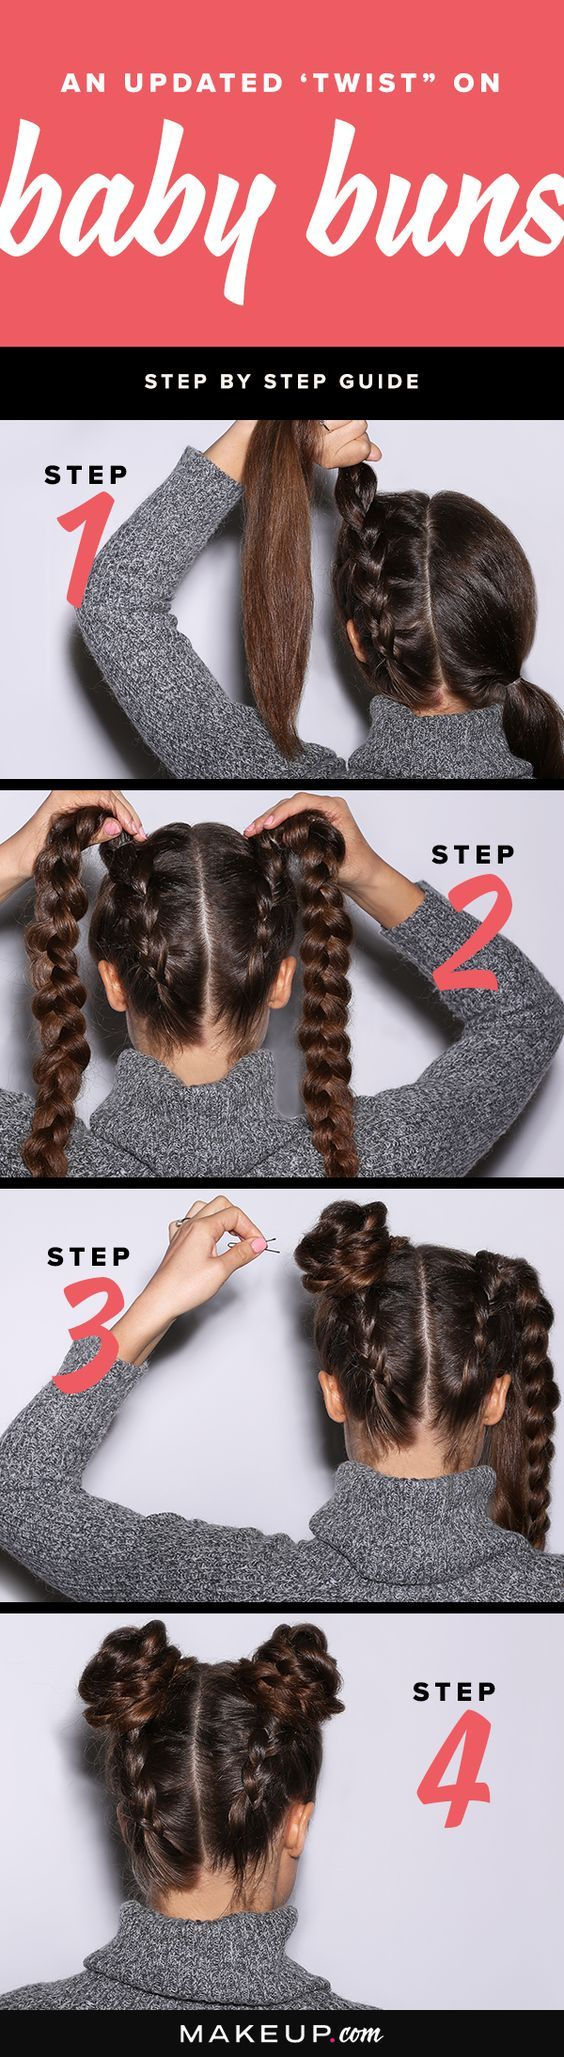 An Updated 'Twist' on Baby Buns | Makeup.com Powered by L'Oréal